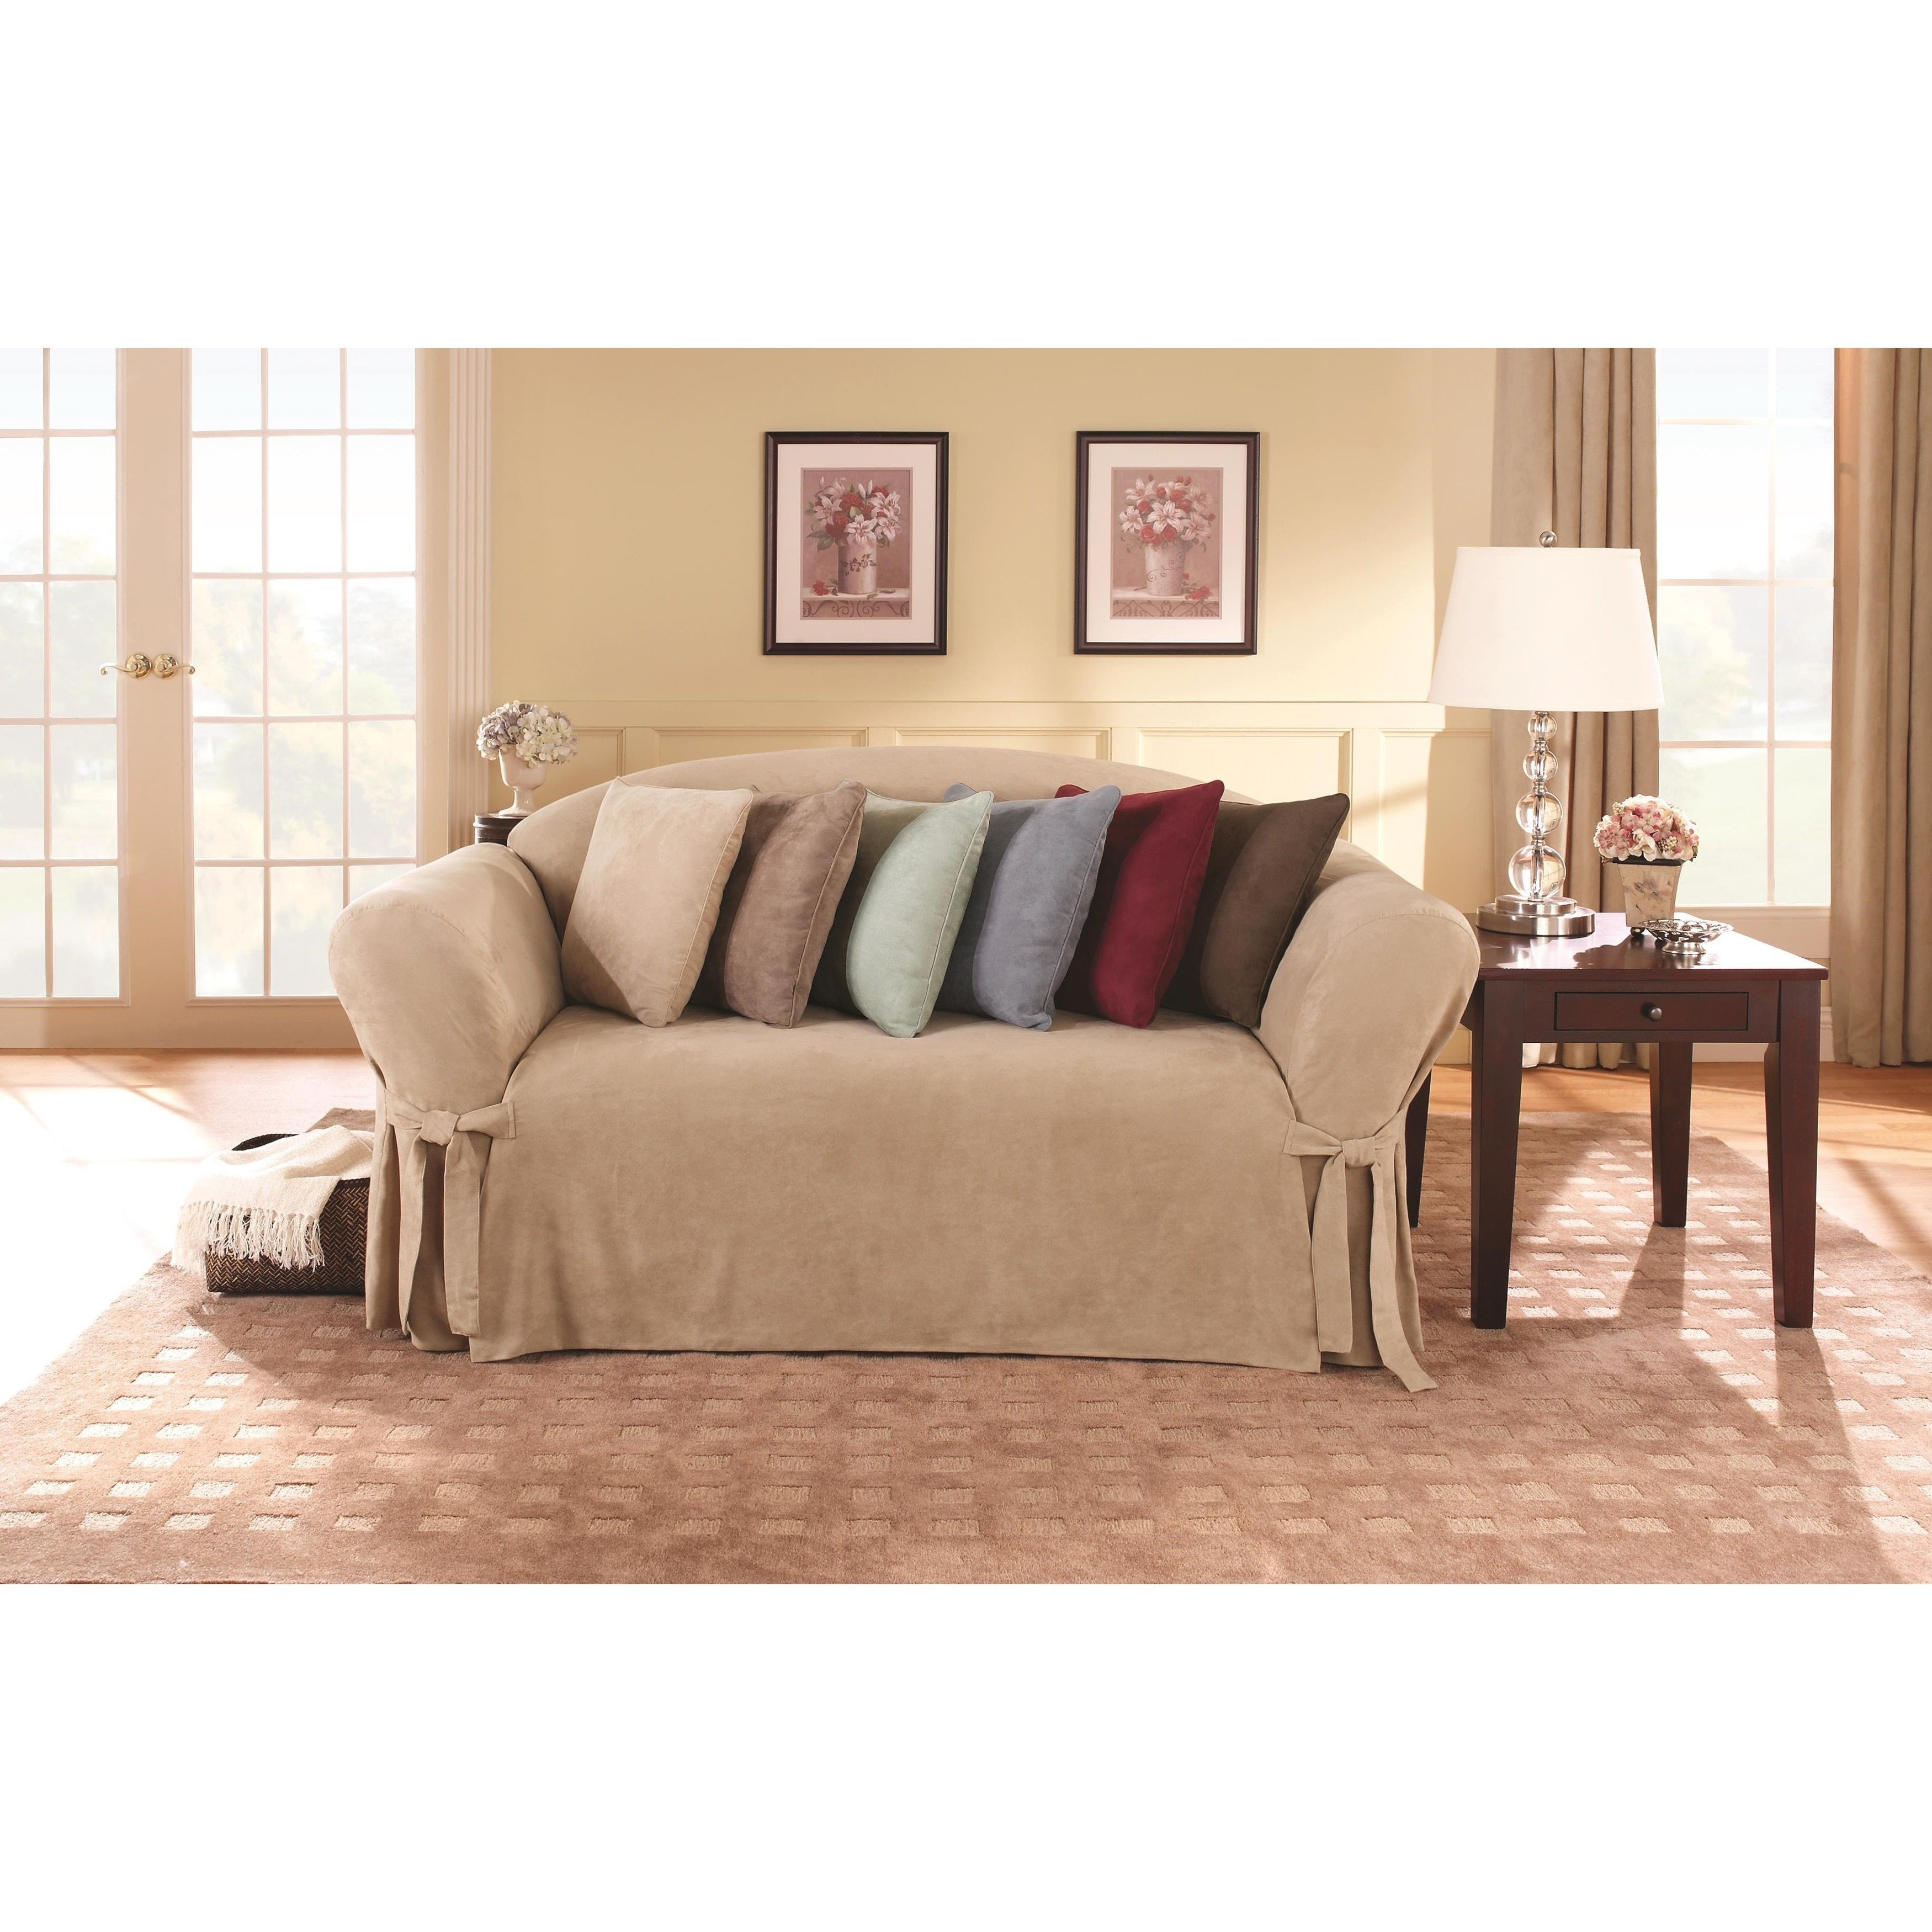 Neutral Slipcovers Furniture Covers For Less Overstock